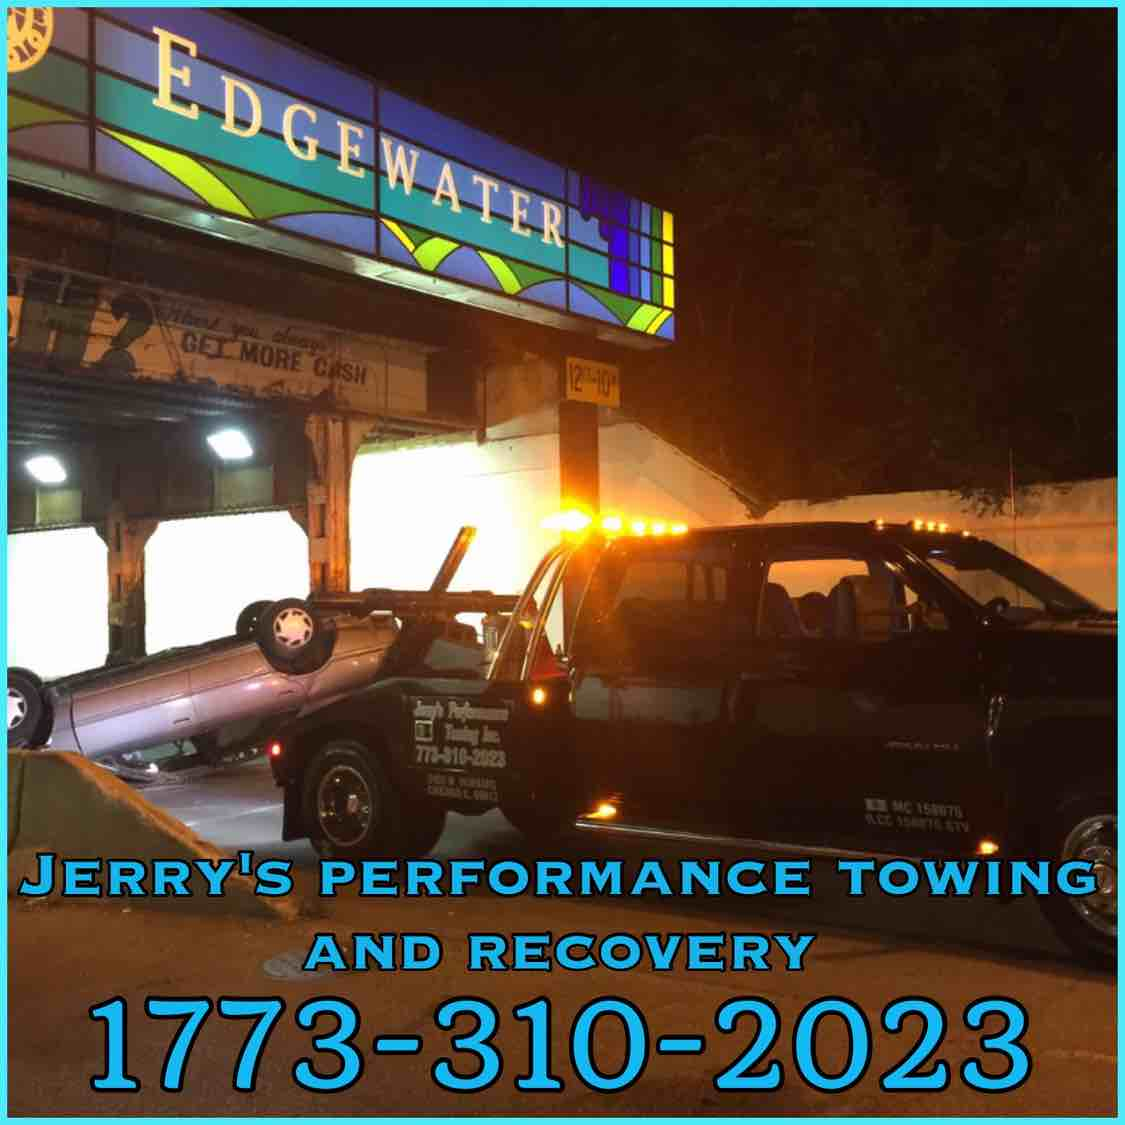 Jerry's performance towing and recovery